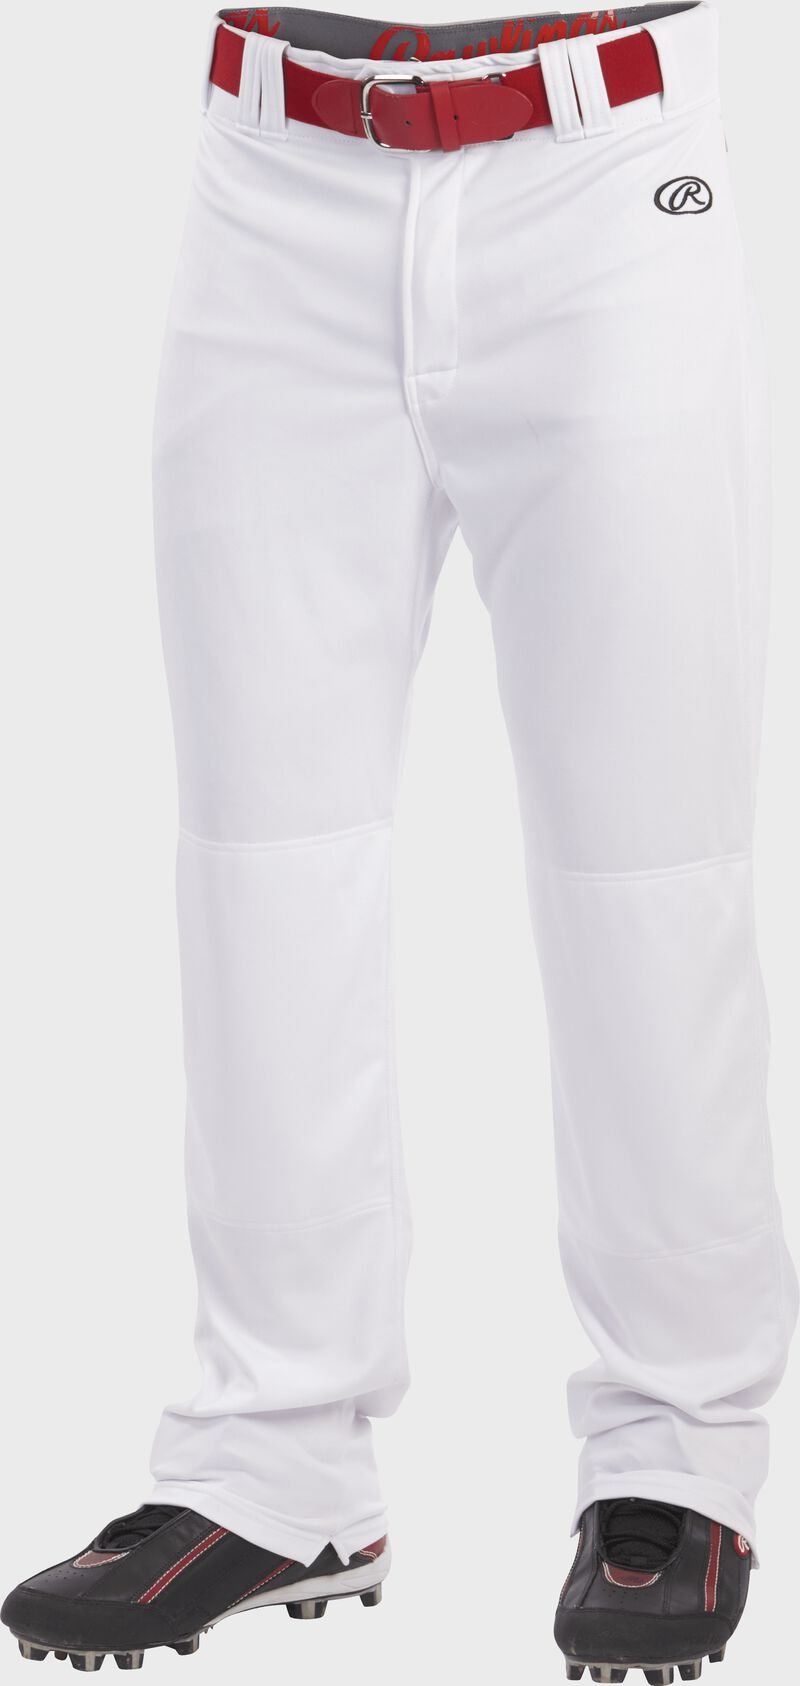 Front of Rawlings White Adult Launch Semi-Relaxed Pant - SKU #LNCHSR